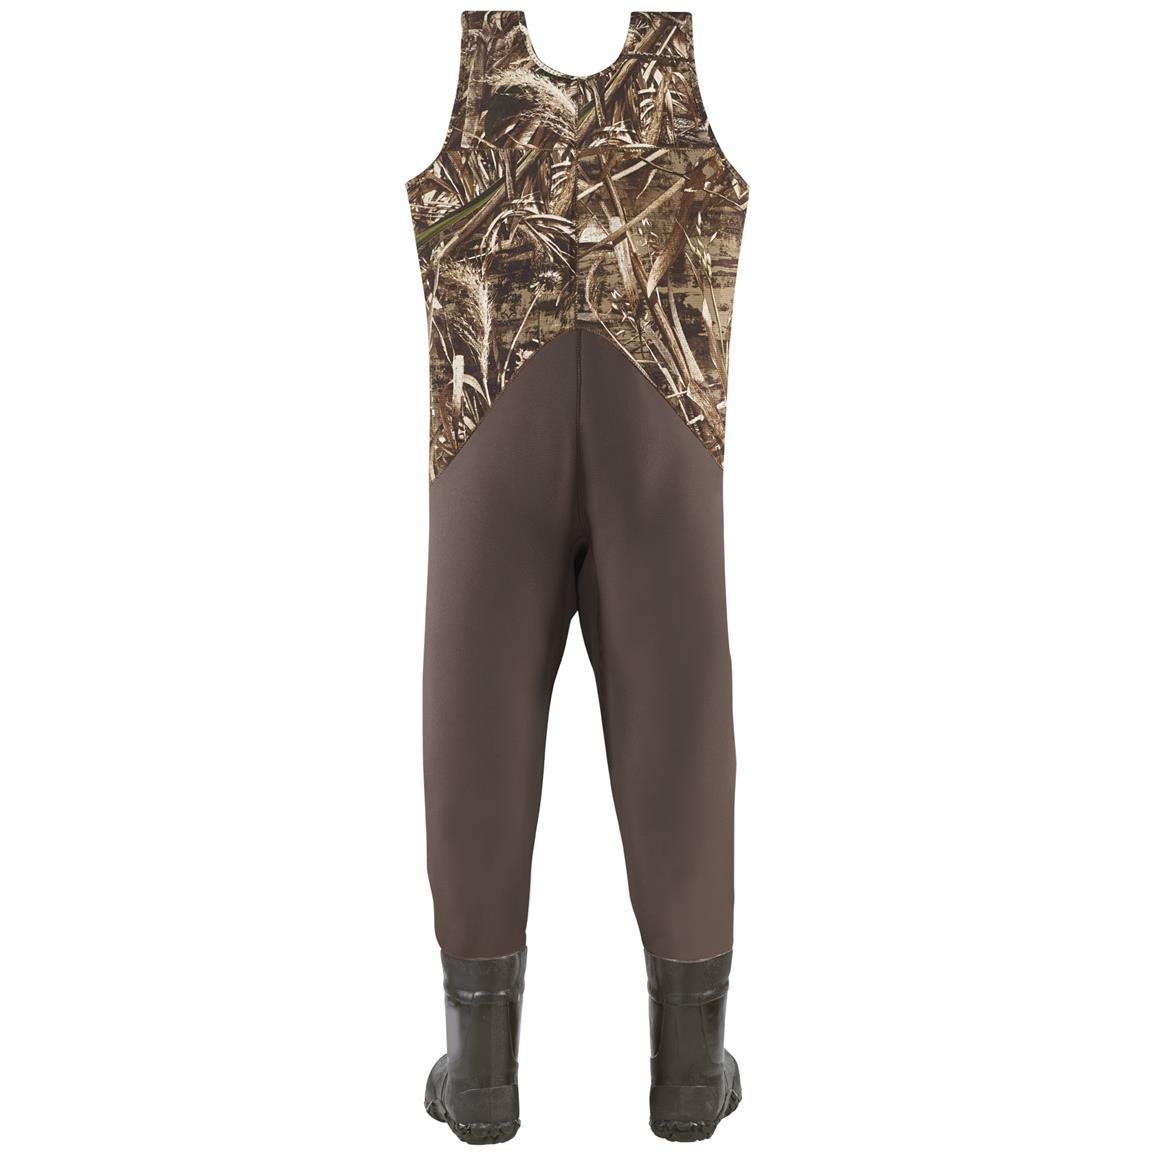 Men's Lacrosse 600 Gram Thinsulate Ultra Teal II Waders, Realtree MAX-5 Camo - Back view